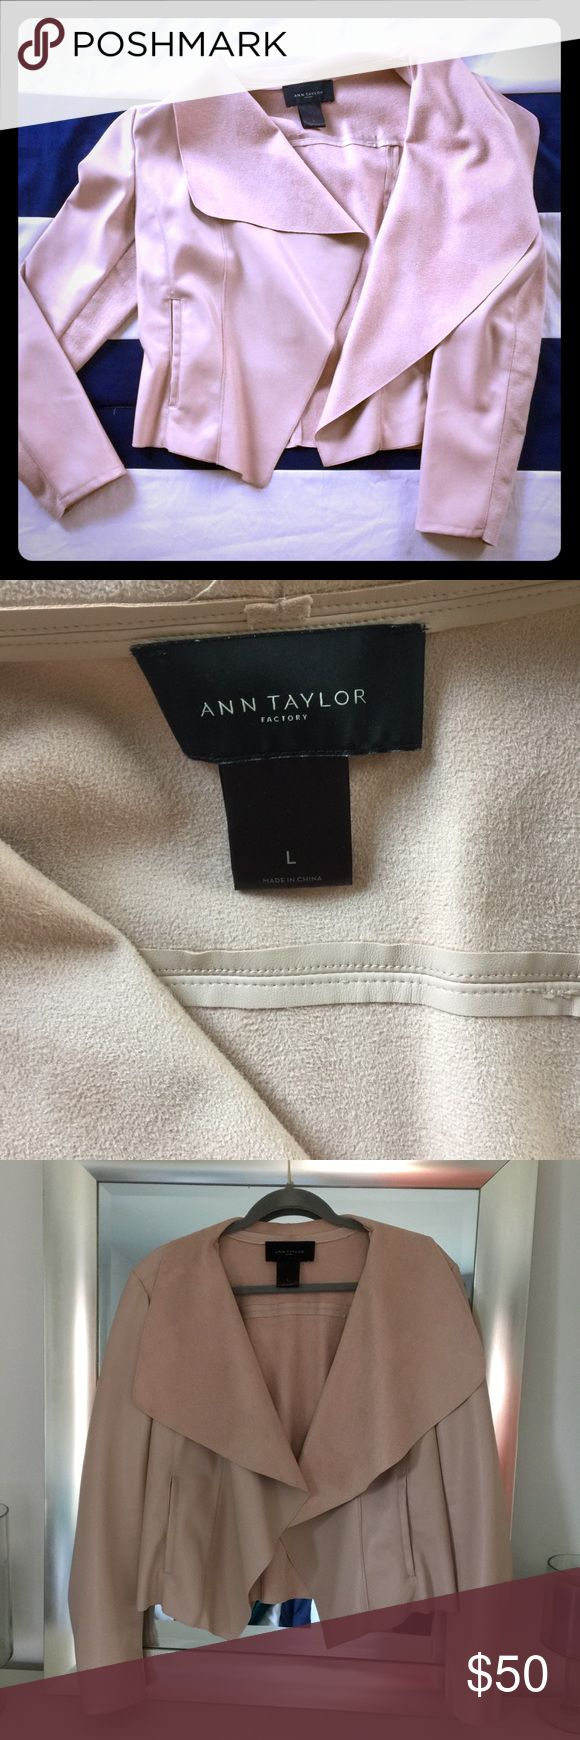 Blush Leather / Suede Jacket Blush (light pink) leather and suede jacket. Wide lapel design with a stretch band in the under sleeve.  Super cute, classy and perfect for spring! Ann Taylor Factory Jackets & Coats Blazers